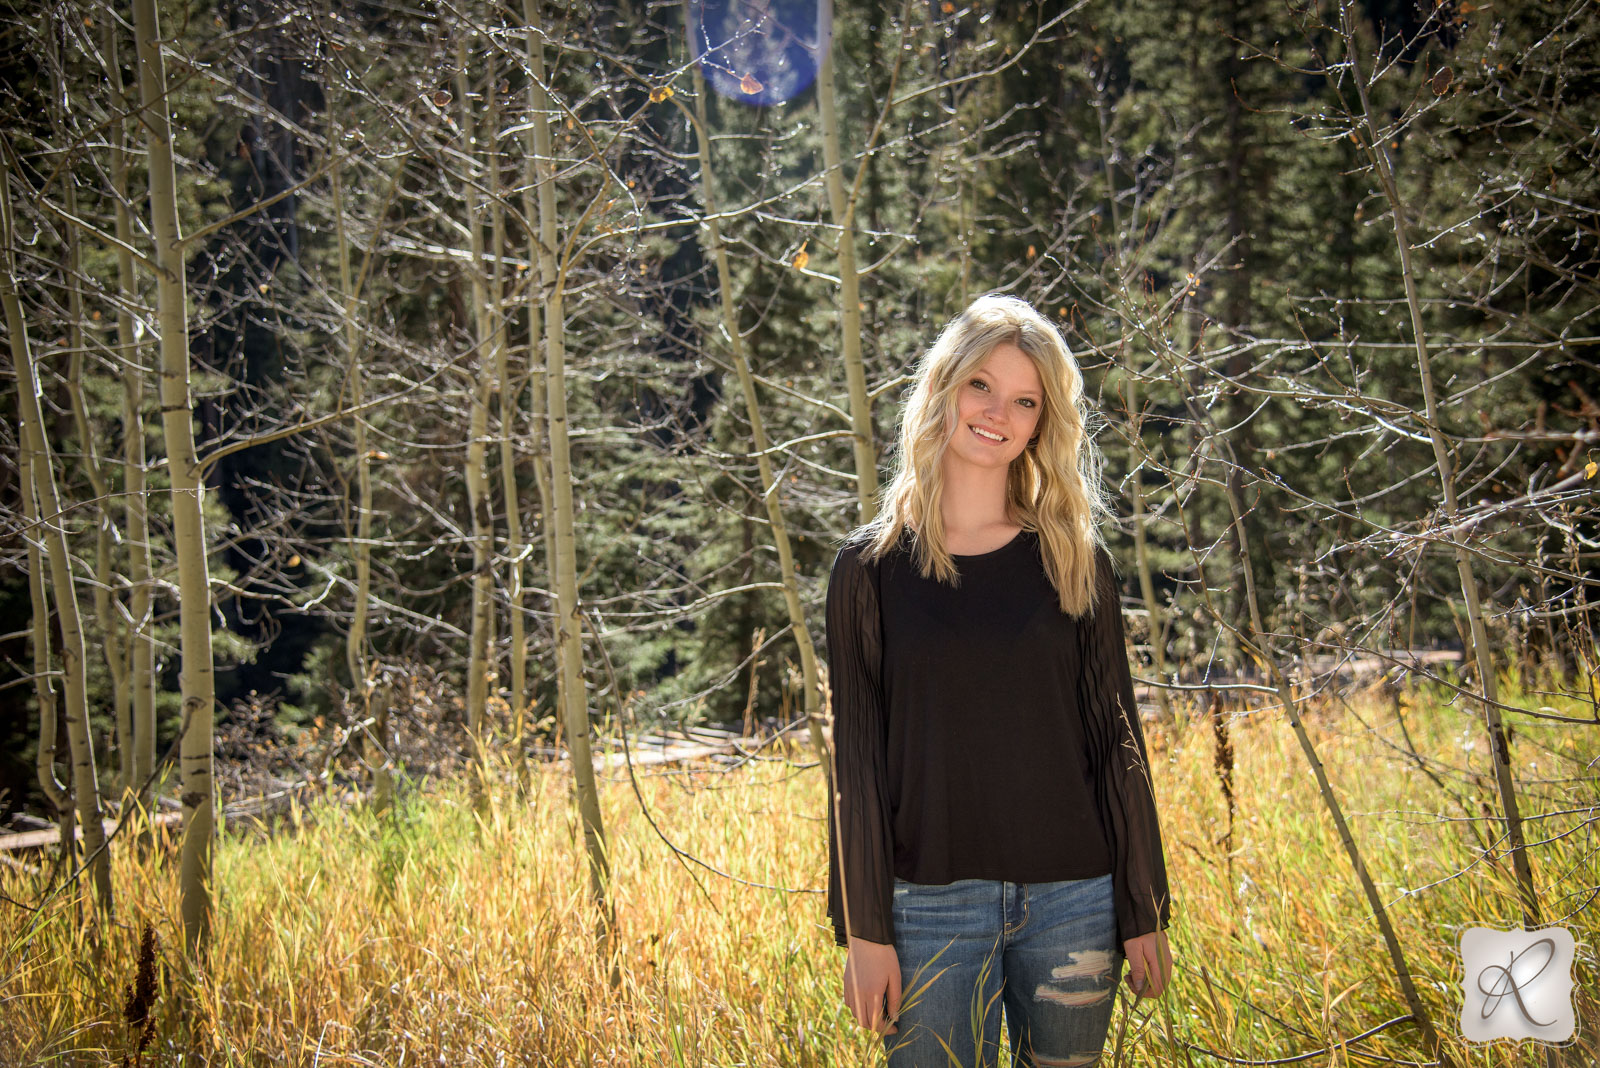 Colorado Senior Portraits Photographed at Purgatory Ski